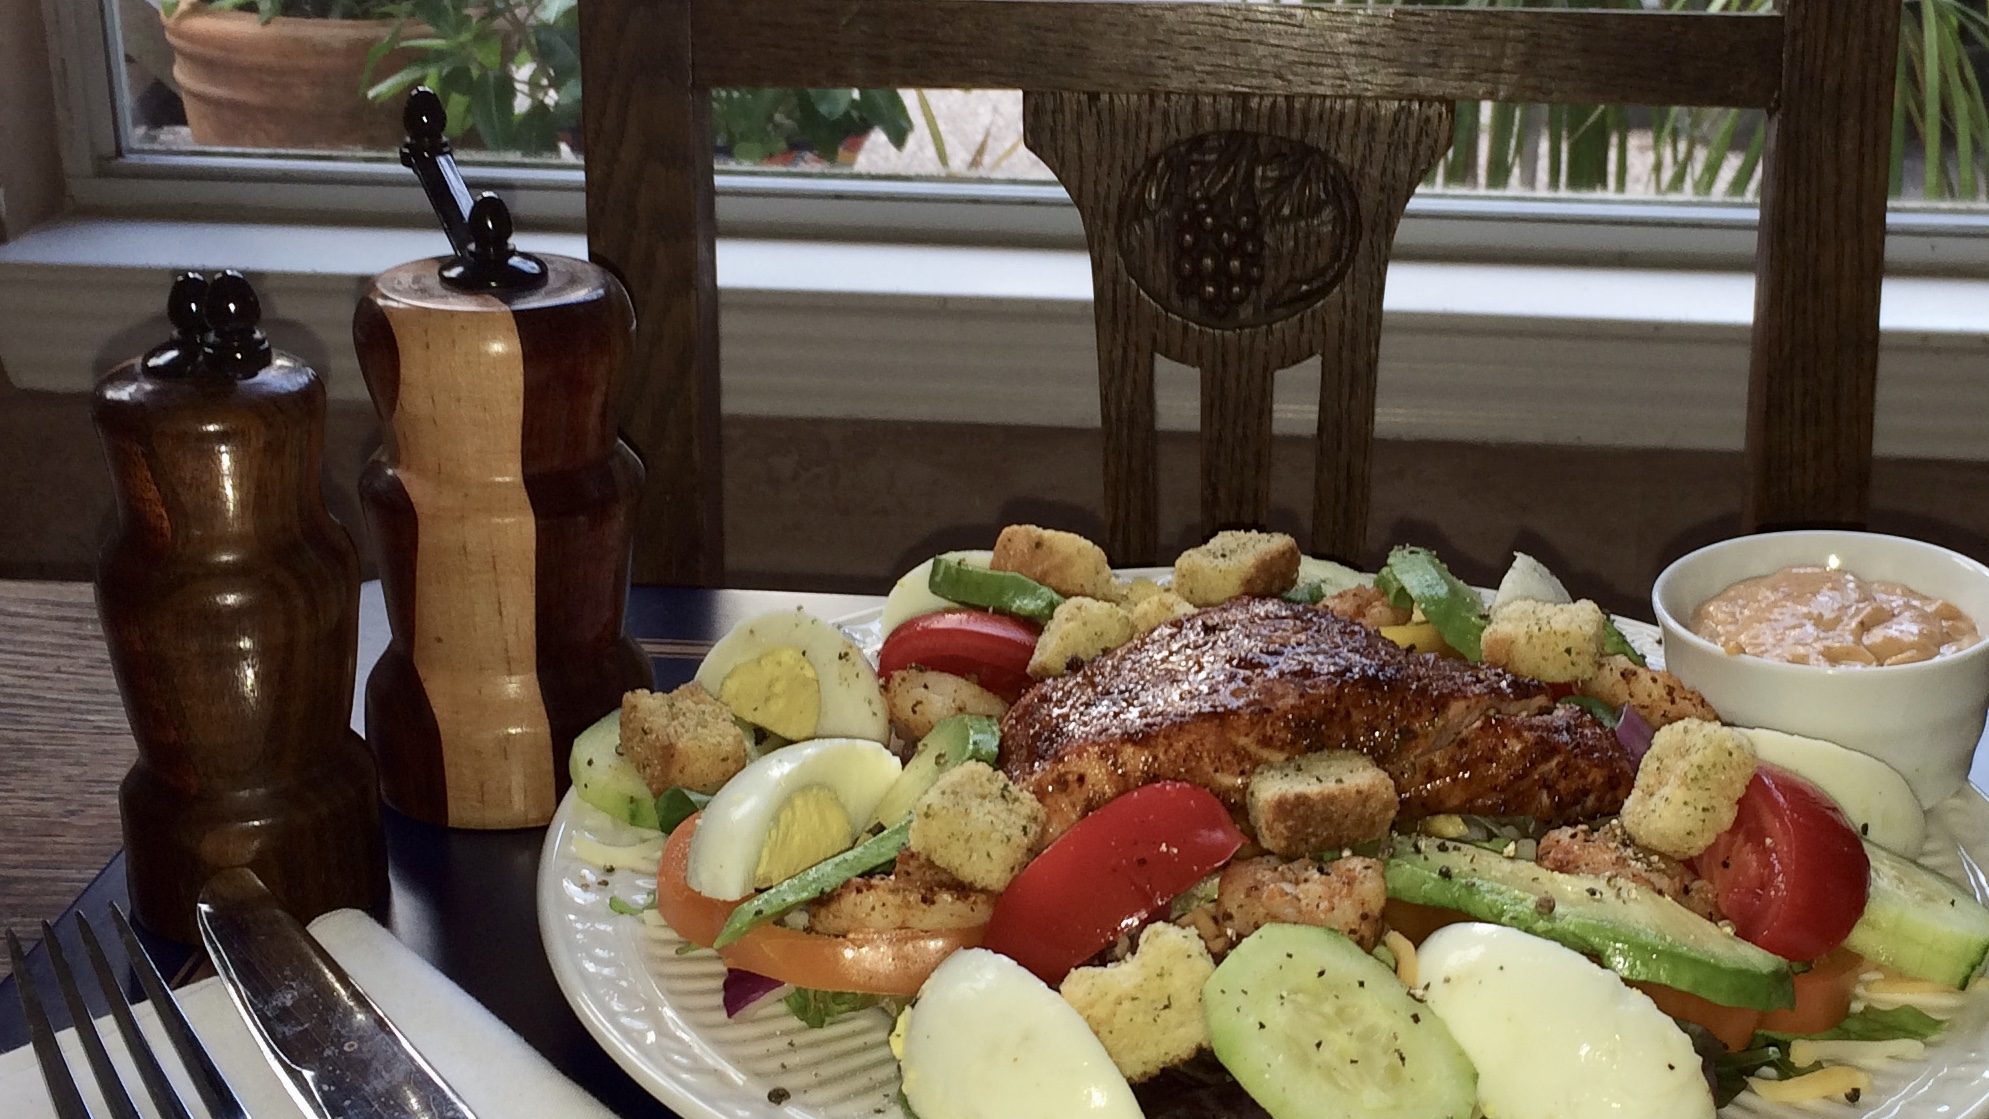 Cool Off in the Hot Summer with Salmon Louie Salad